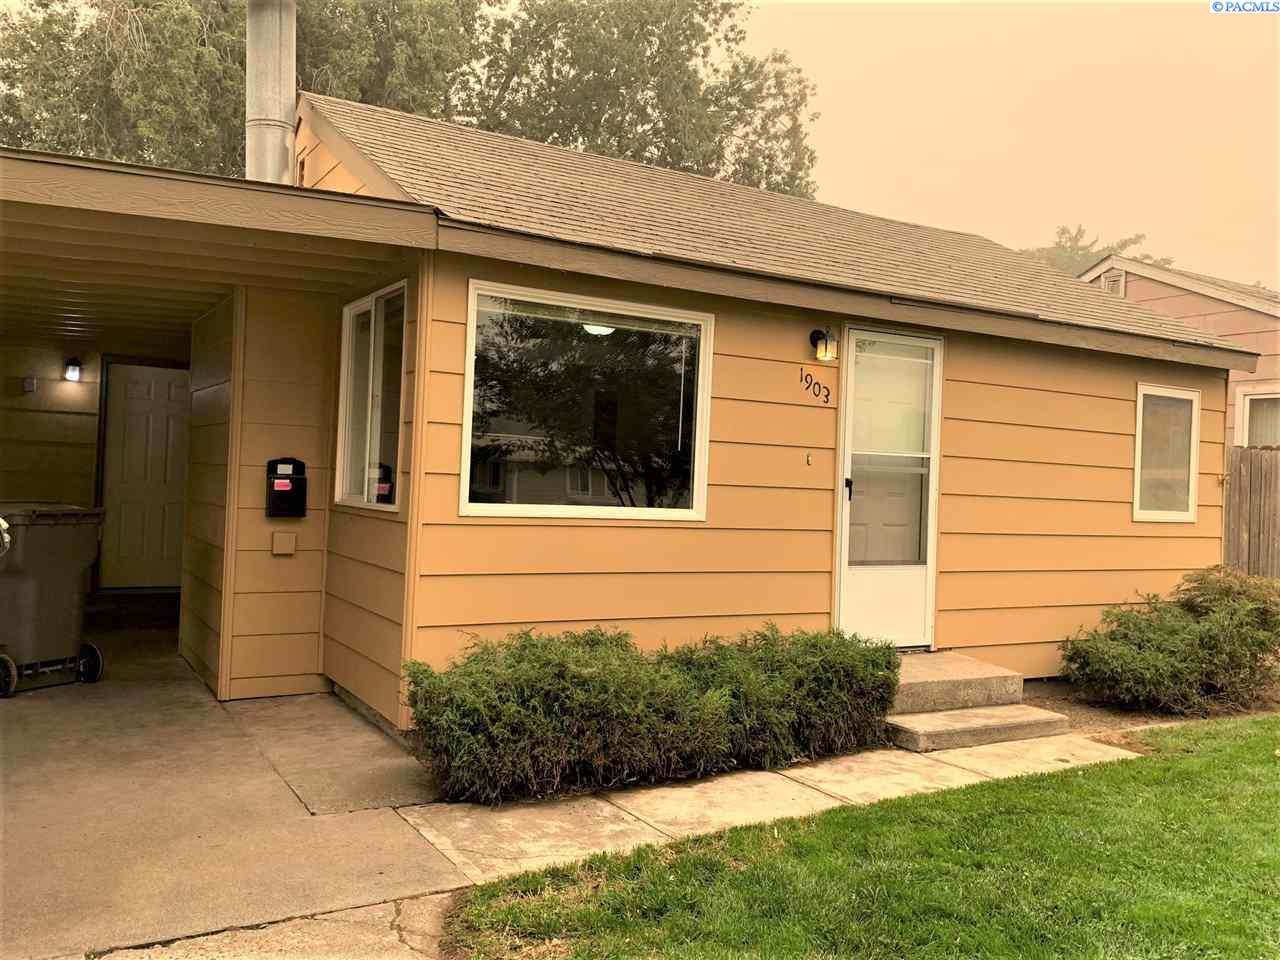 Single Family Homes for Sale at 1903 W 5th Avenue Kennewick, Washington 99336 United States